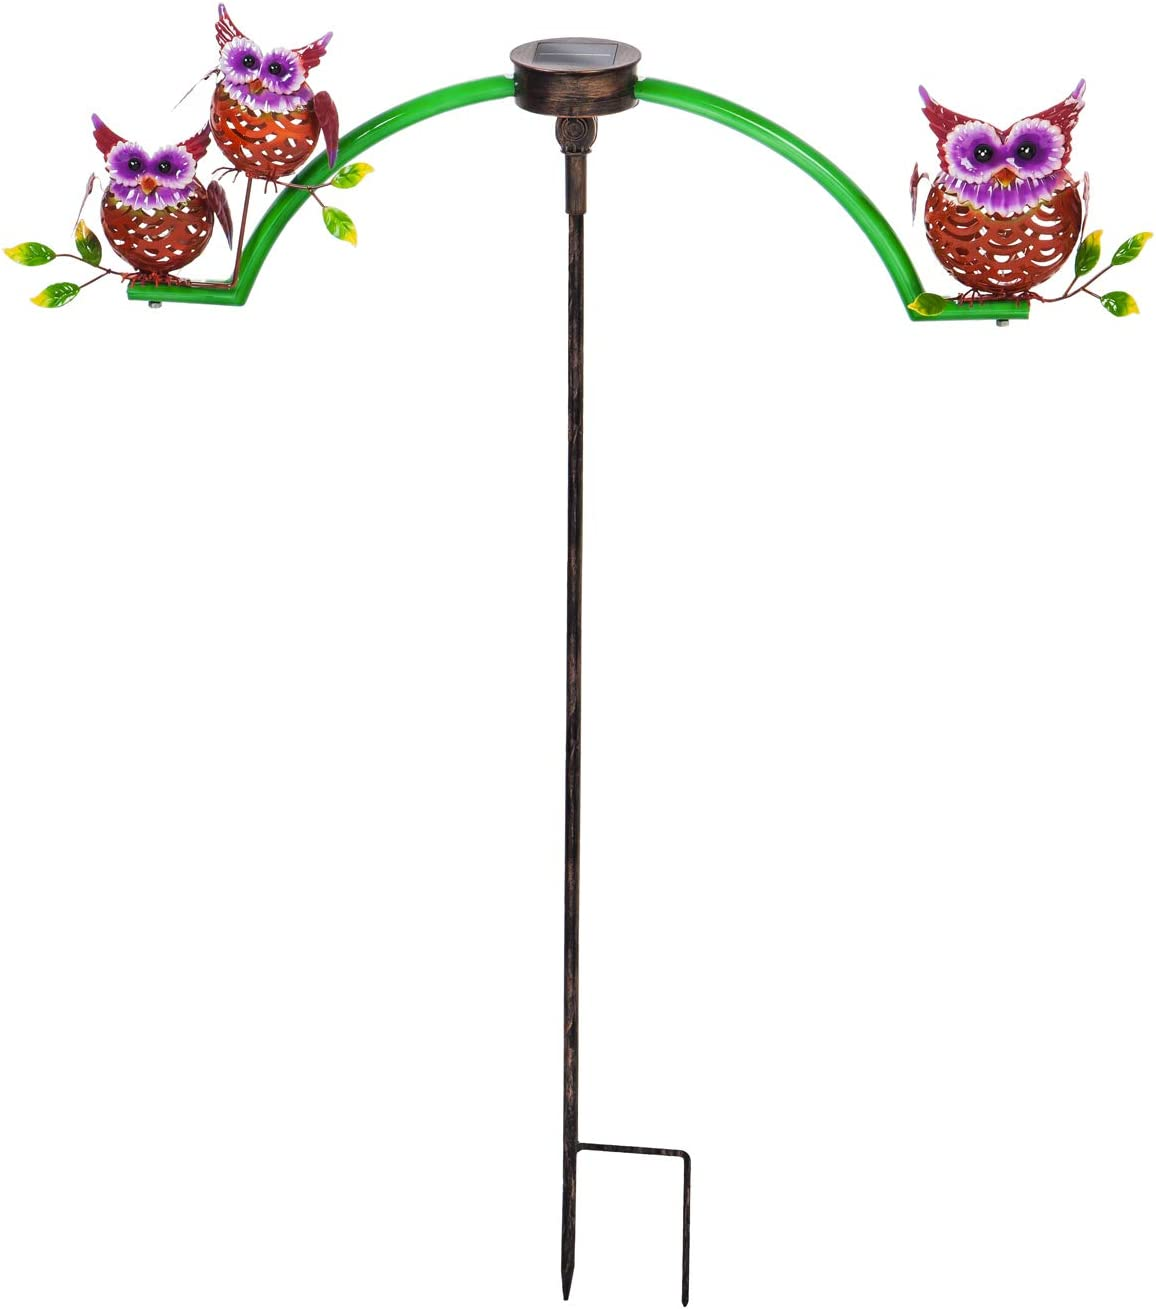 Evergreen Garden Beautiful Owl Chasing White Light Solar Balancer Garden Stake - 30 x 3 x 35 Inches Fade and Weather Resistant Outdoor Decoration for Homes, Yards and Gardens